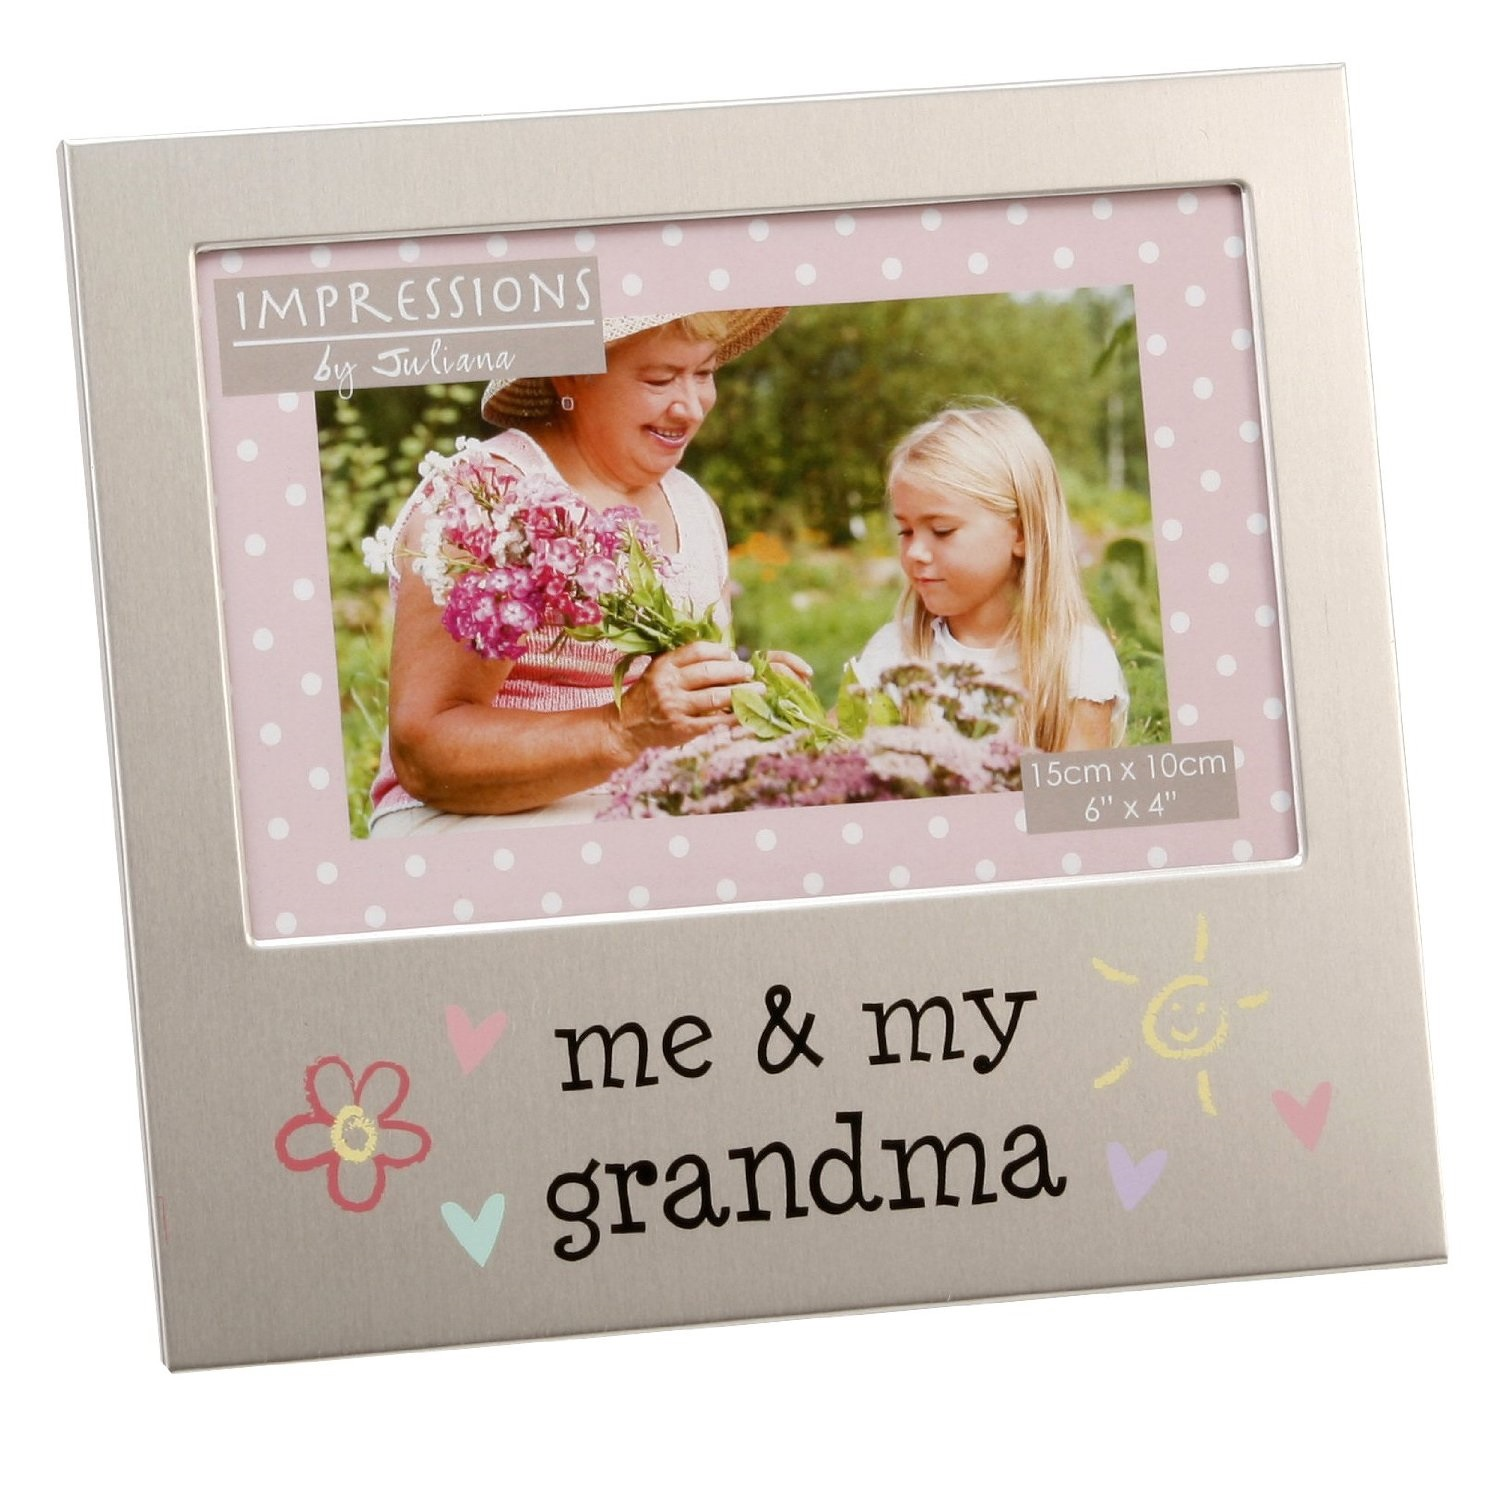 Me My Grandma 6 X 4 Photo Frame